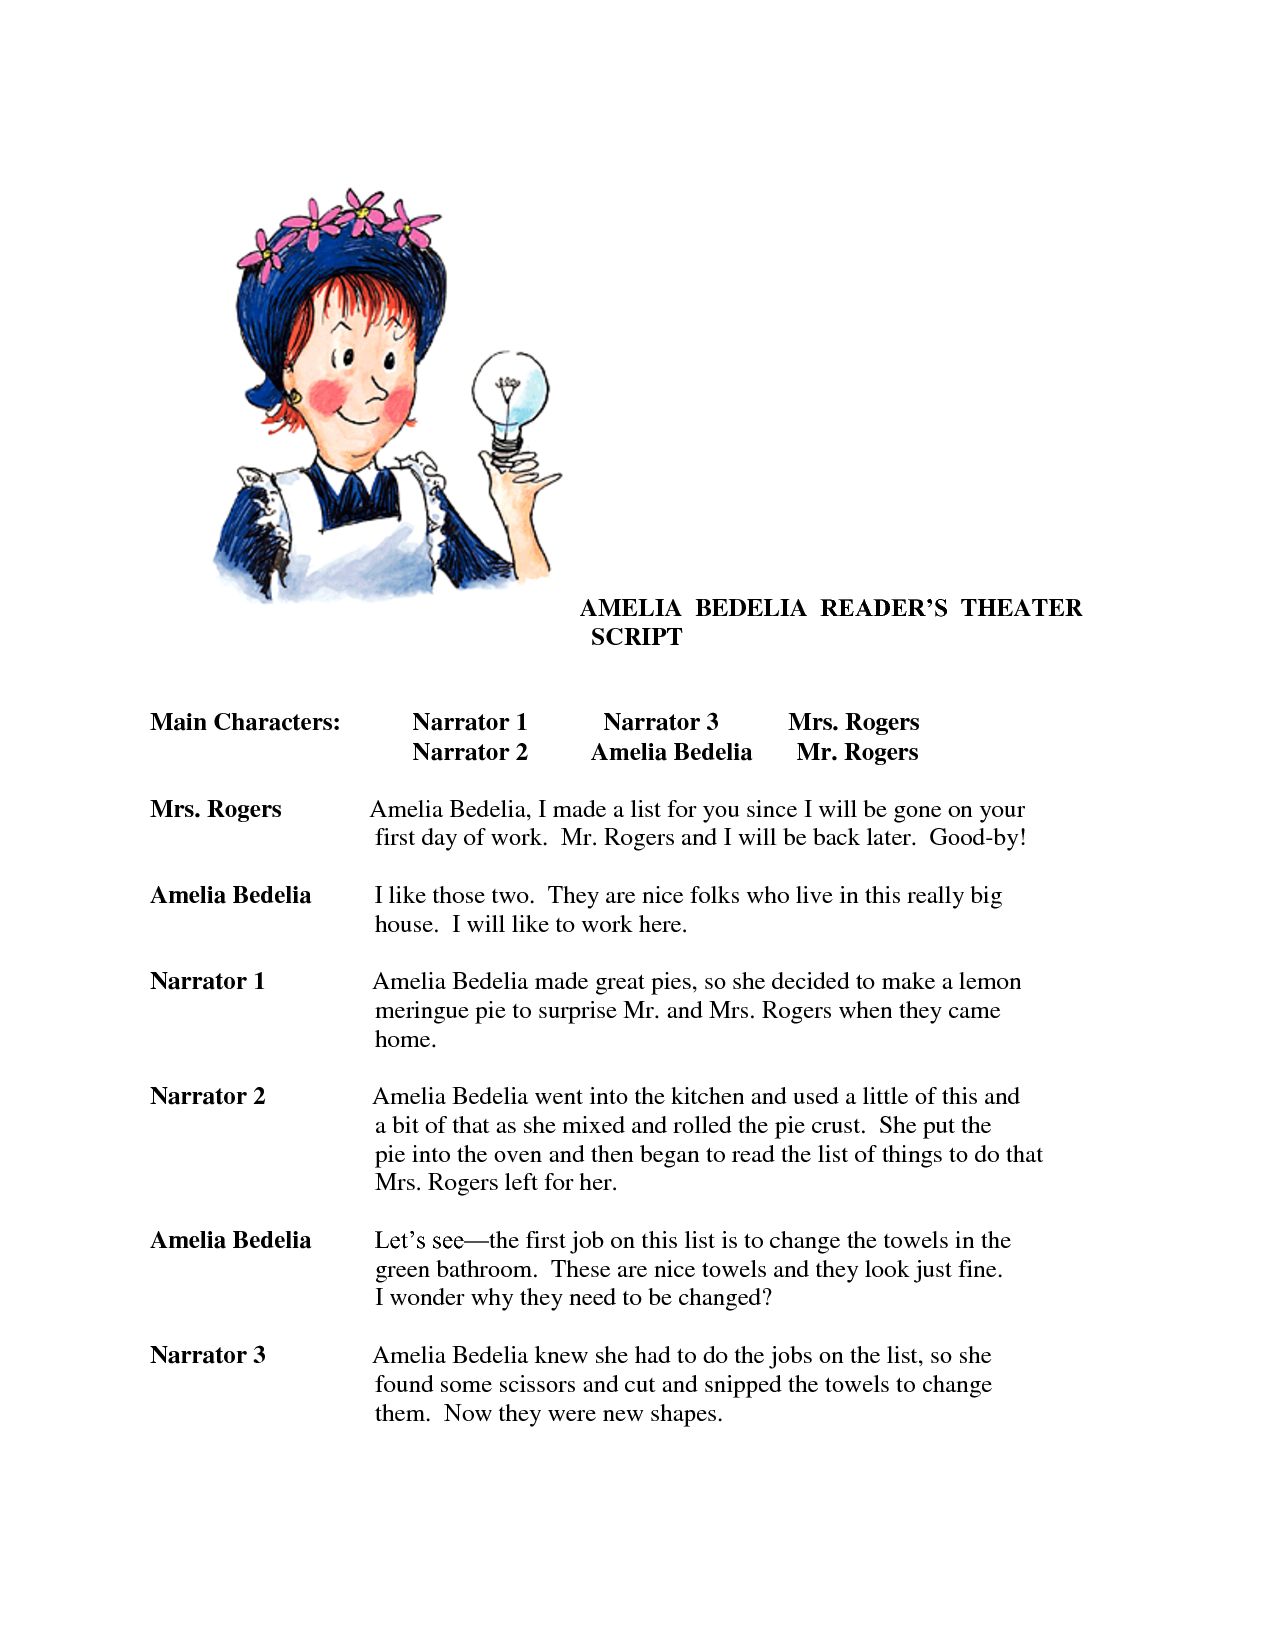 worksheets ameleia bedelia | Amelia Bedelia reader\'s theater ...